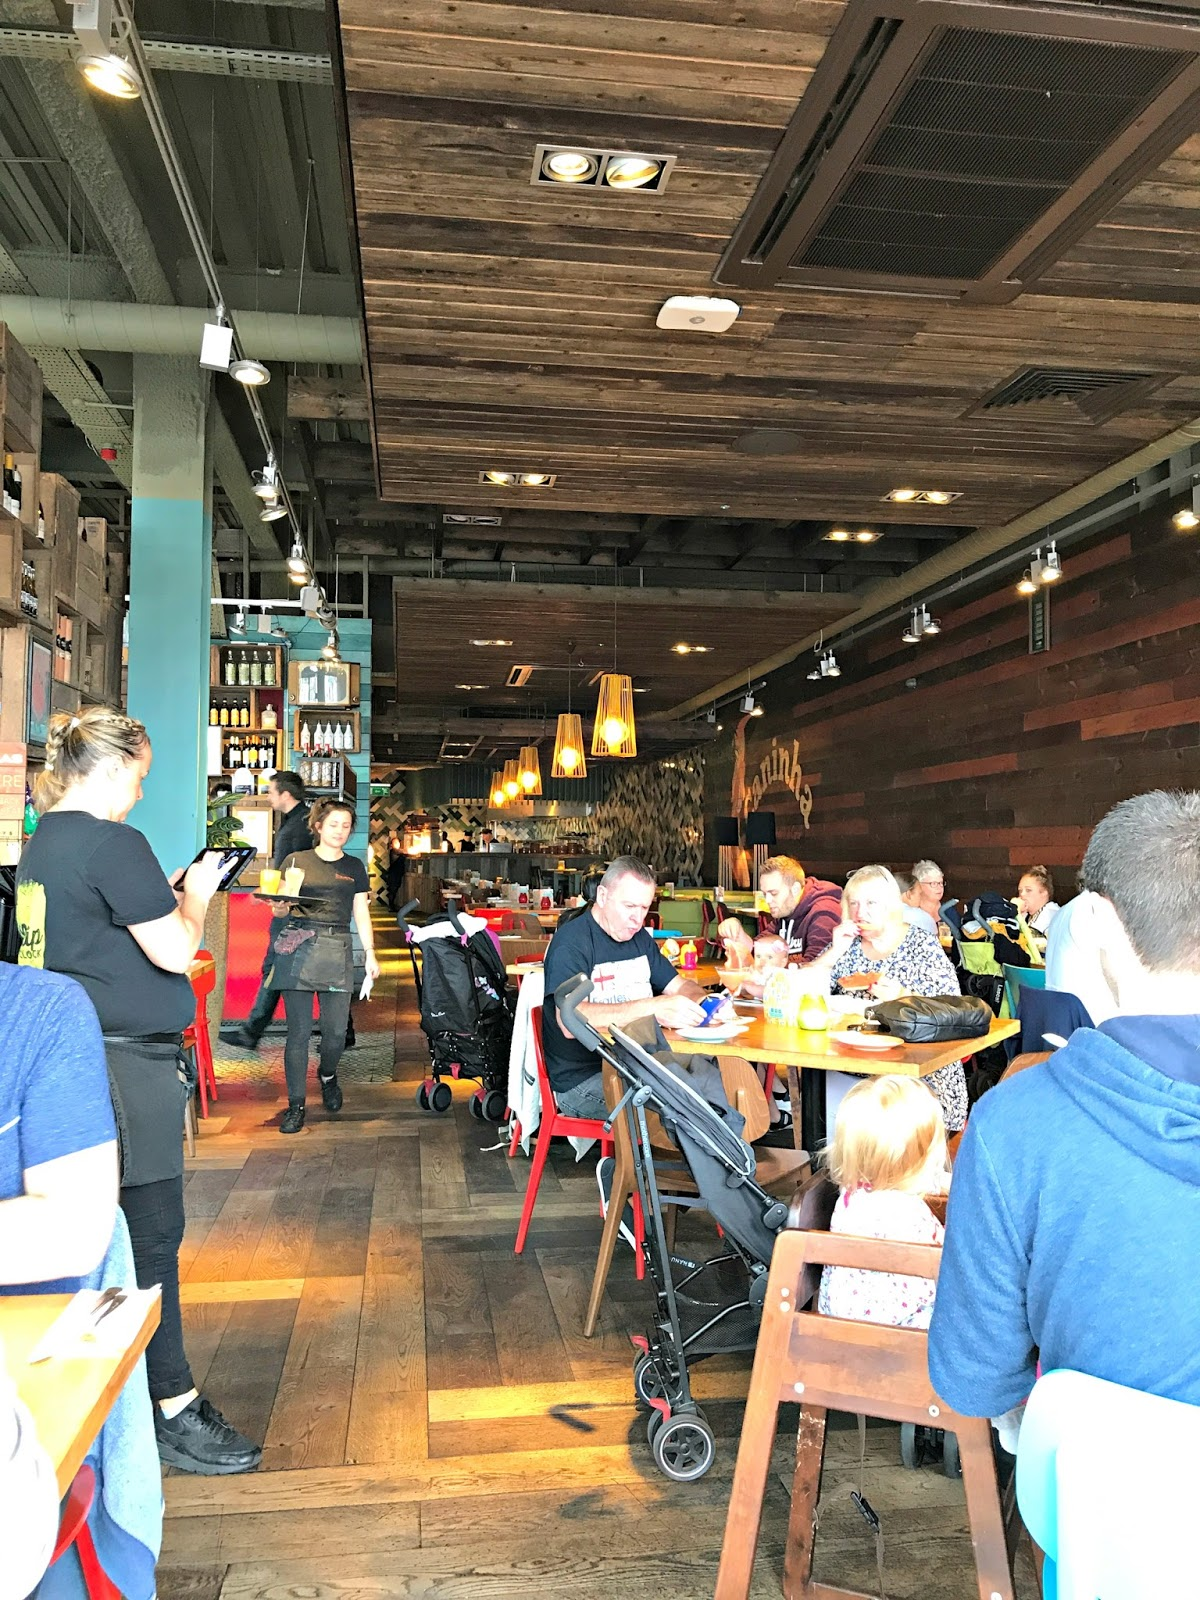 Interior of Las Iguanas Restaurant, Mermaid Quay, Cardiff Bay